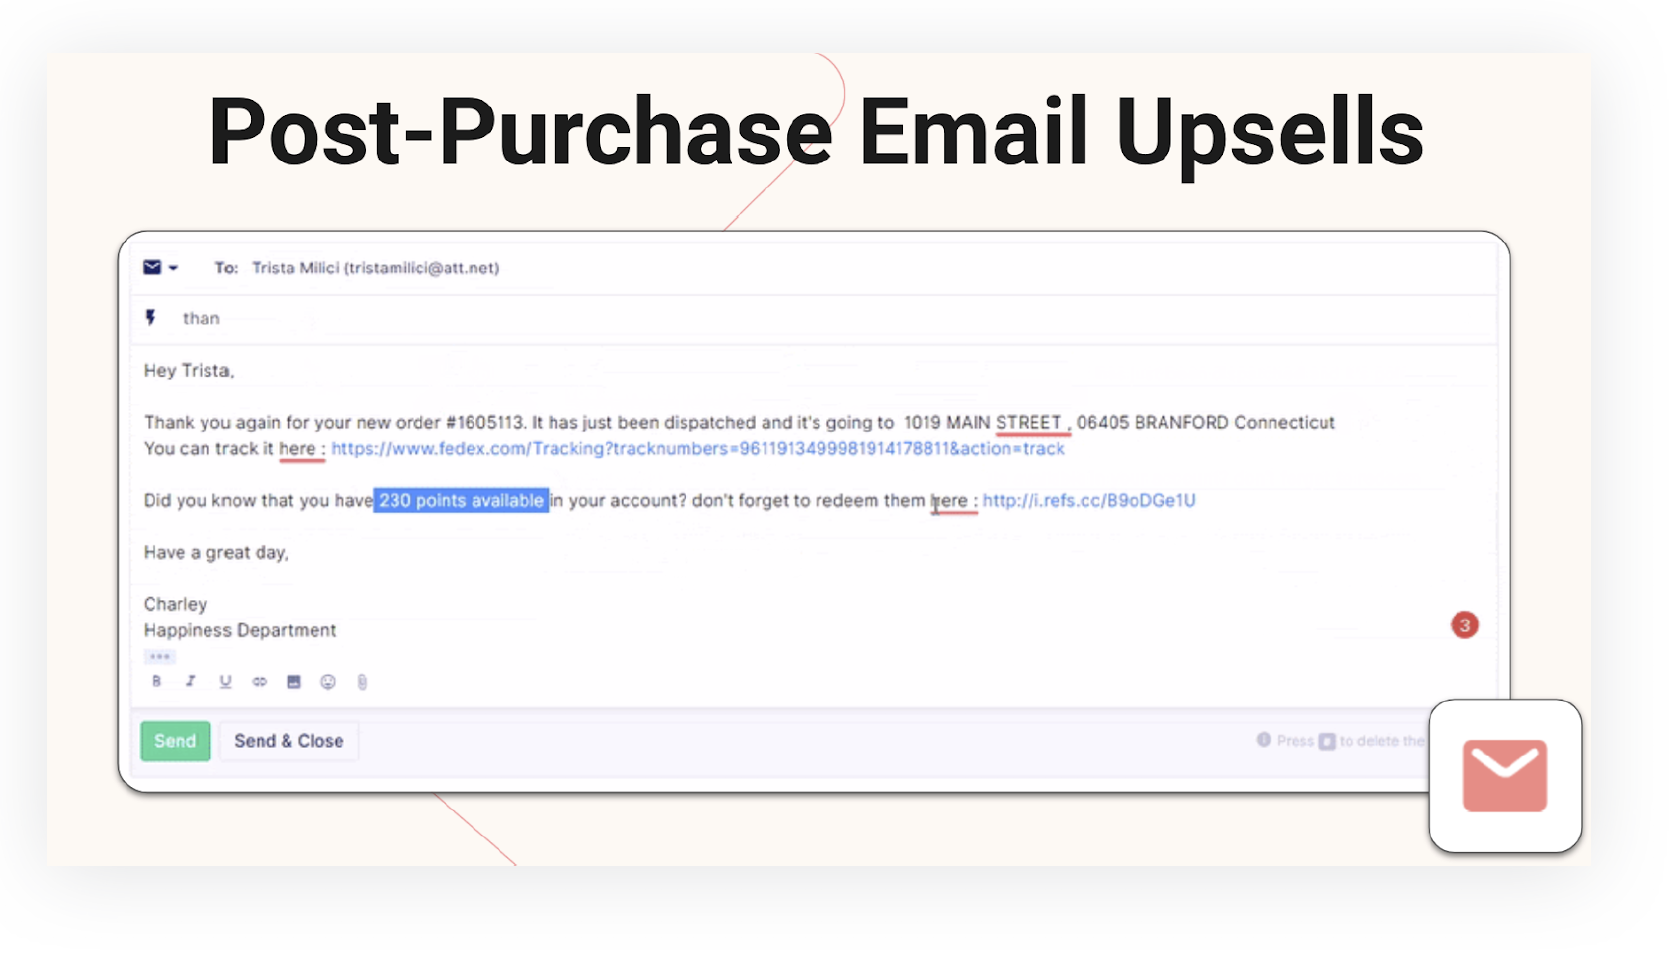 Post-Purchase Email Upsells